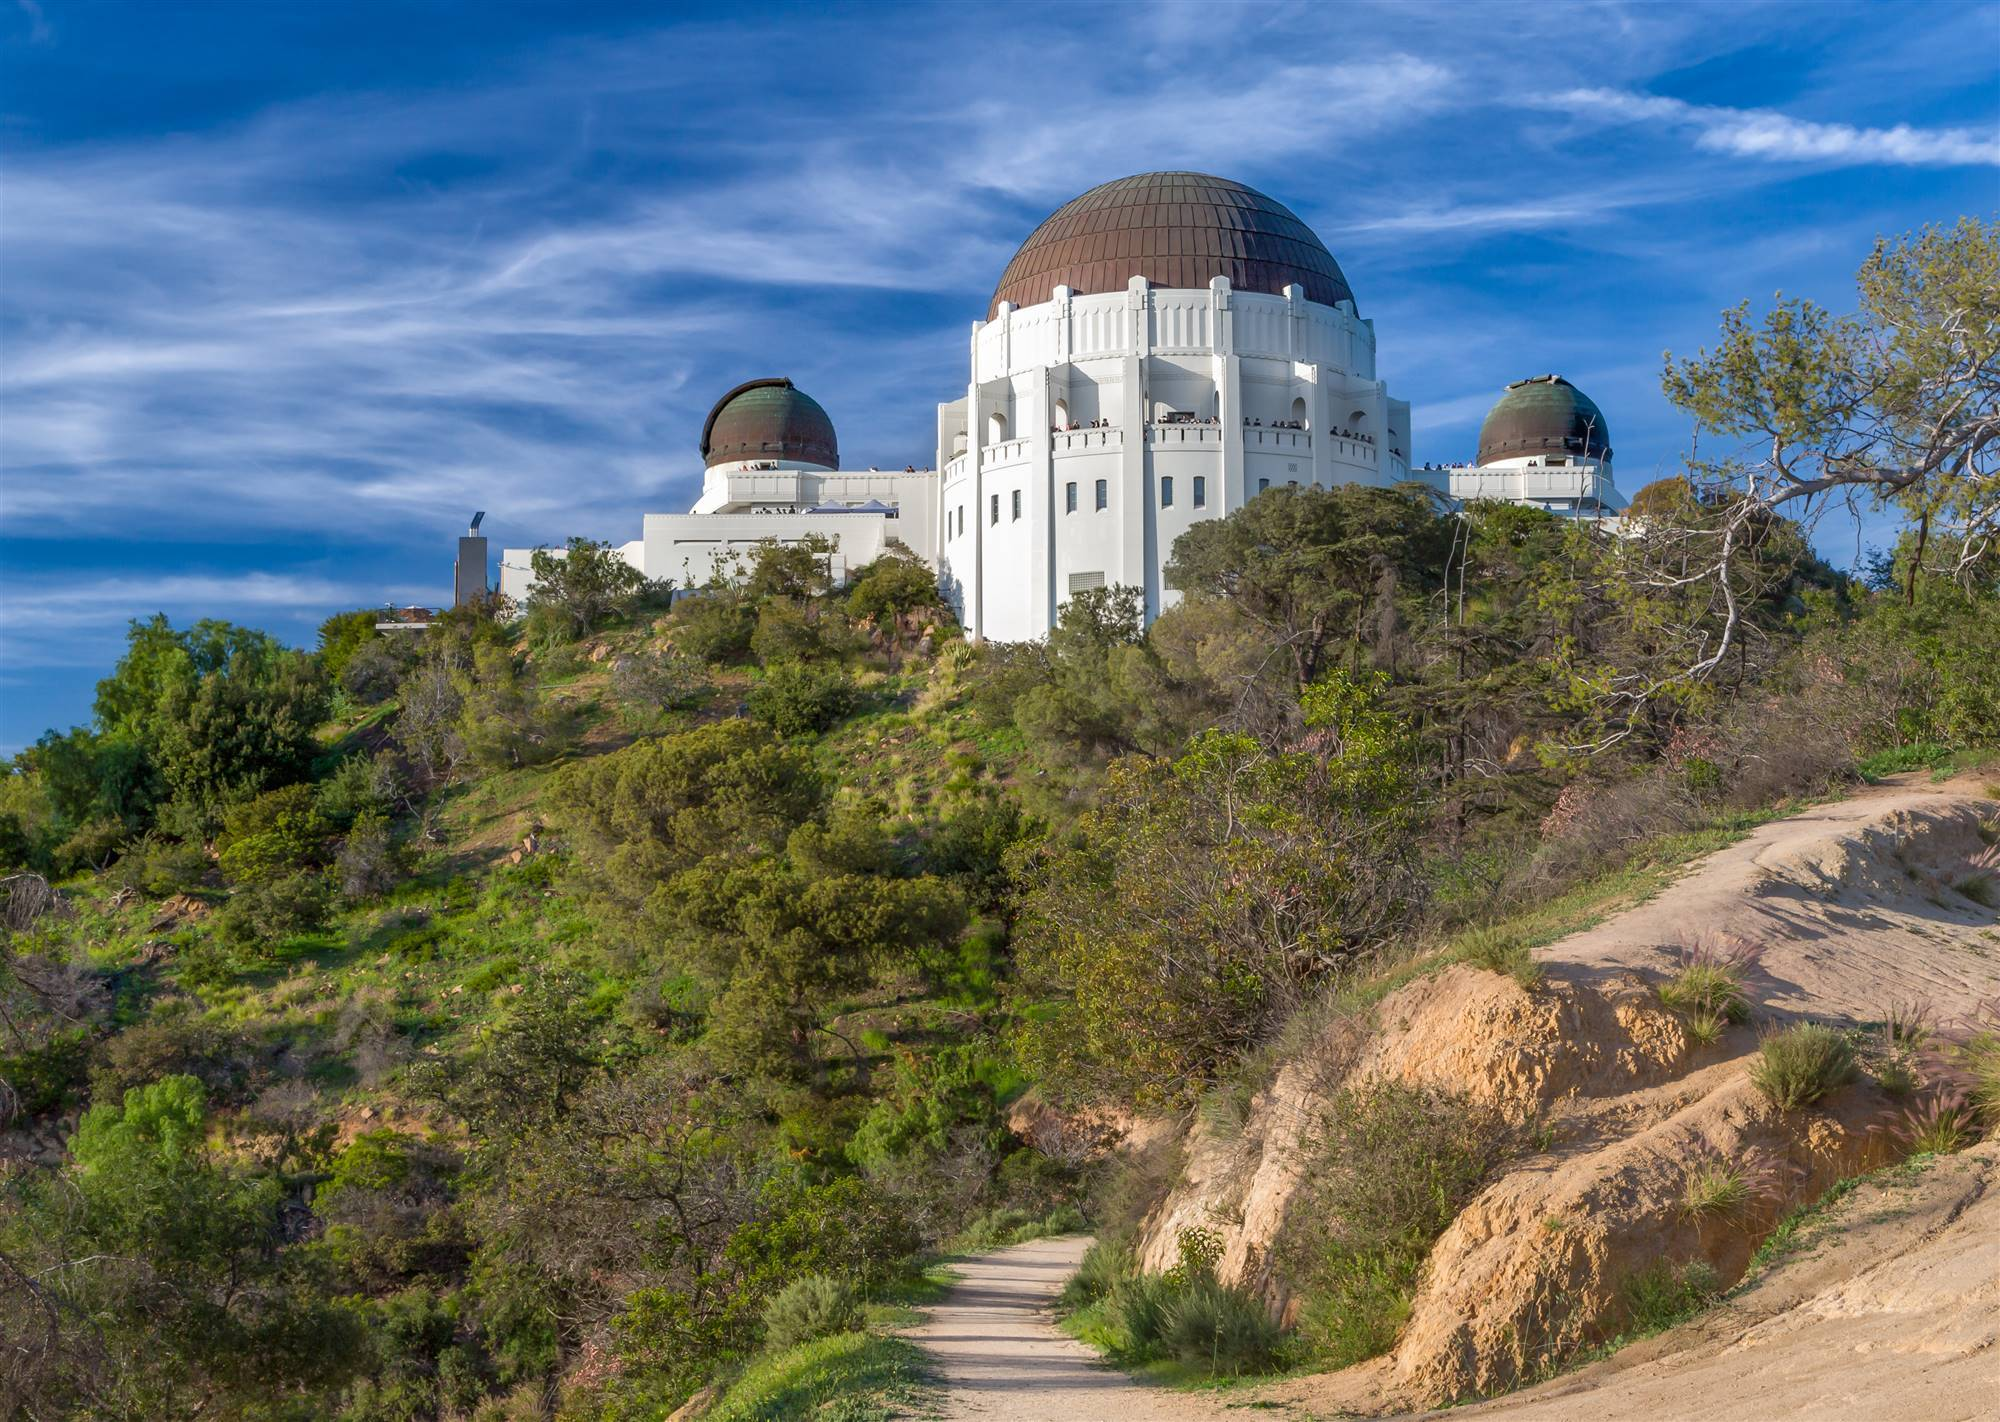 Observatorio de Griffith